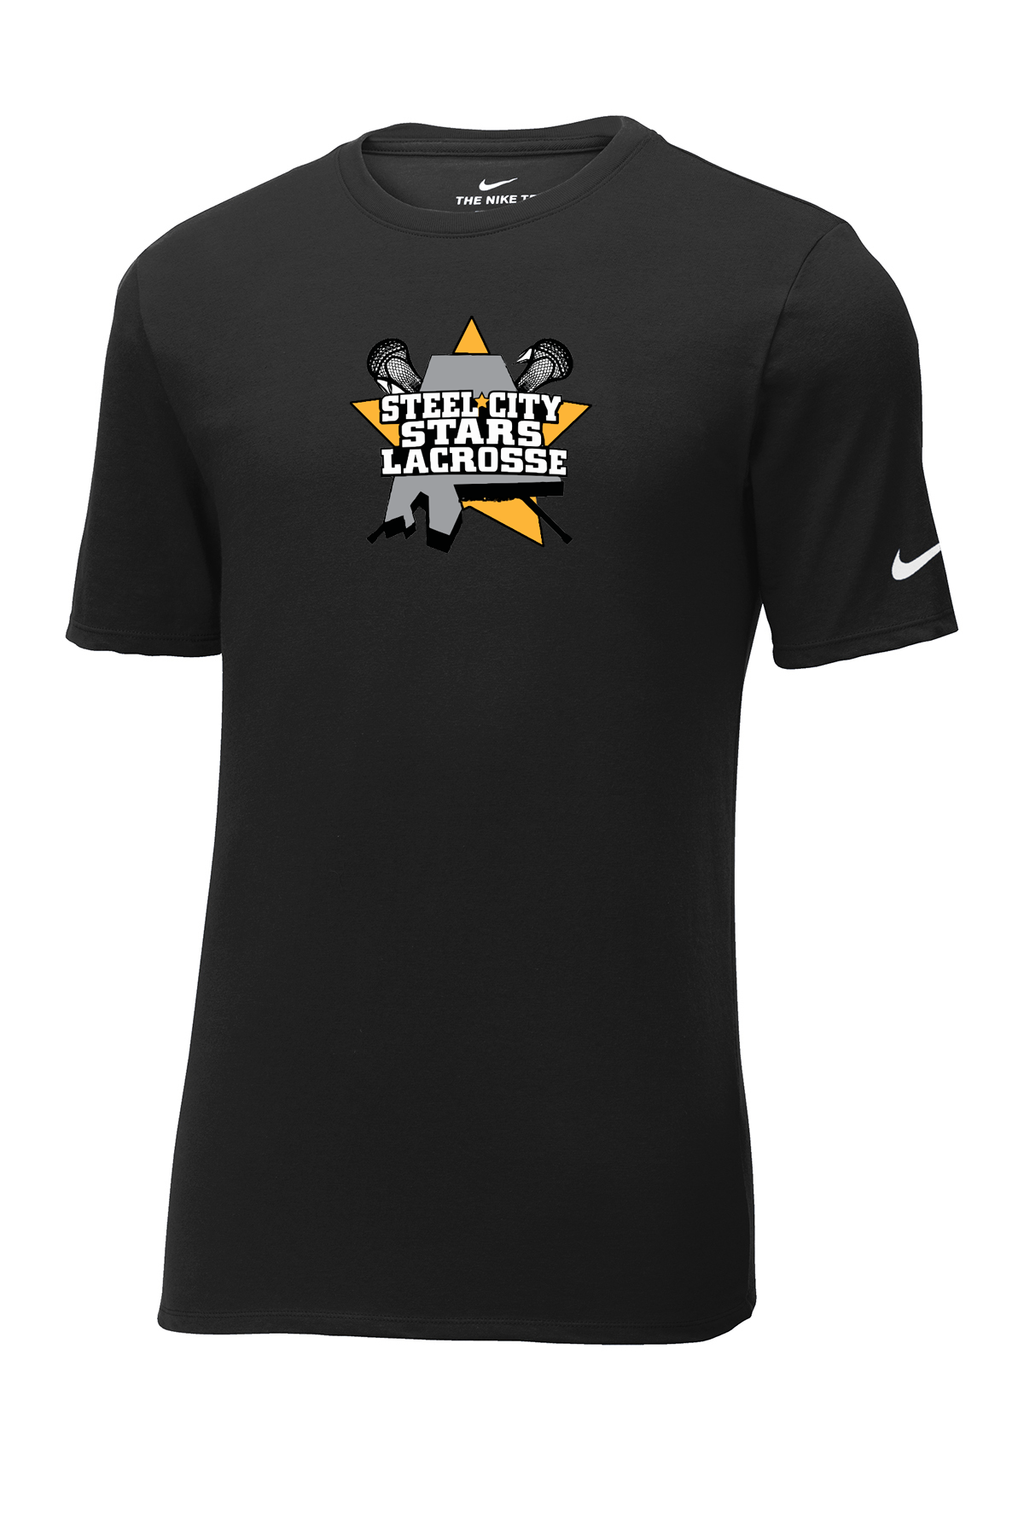 Stars Lacrosse Nike Core Cotton Tee